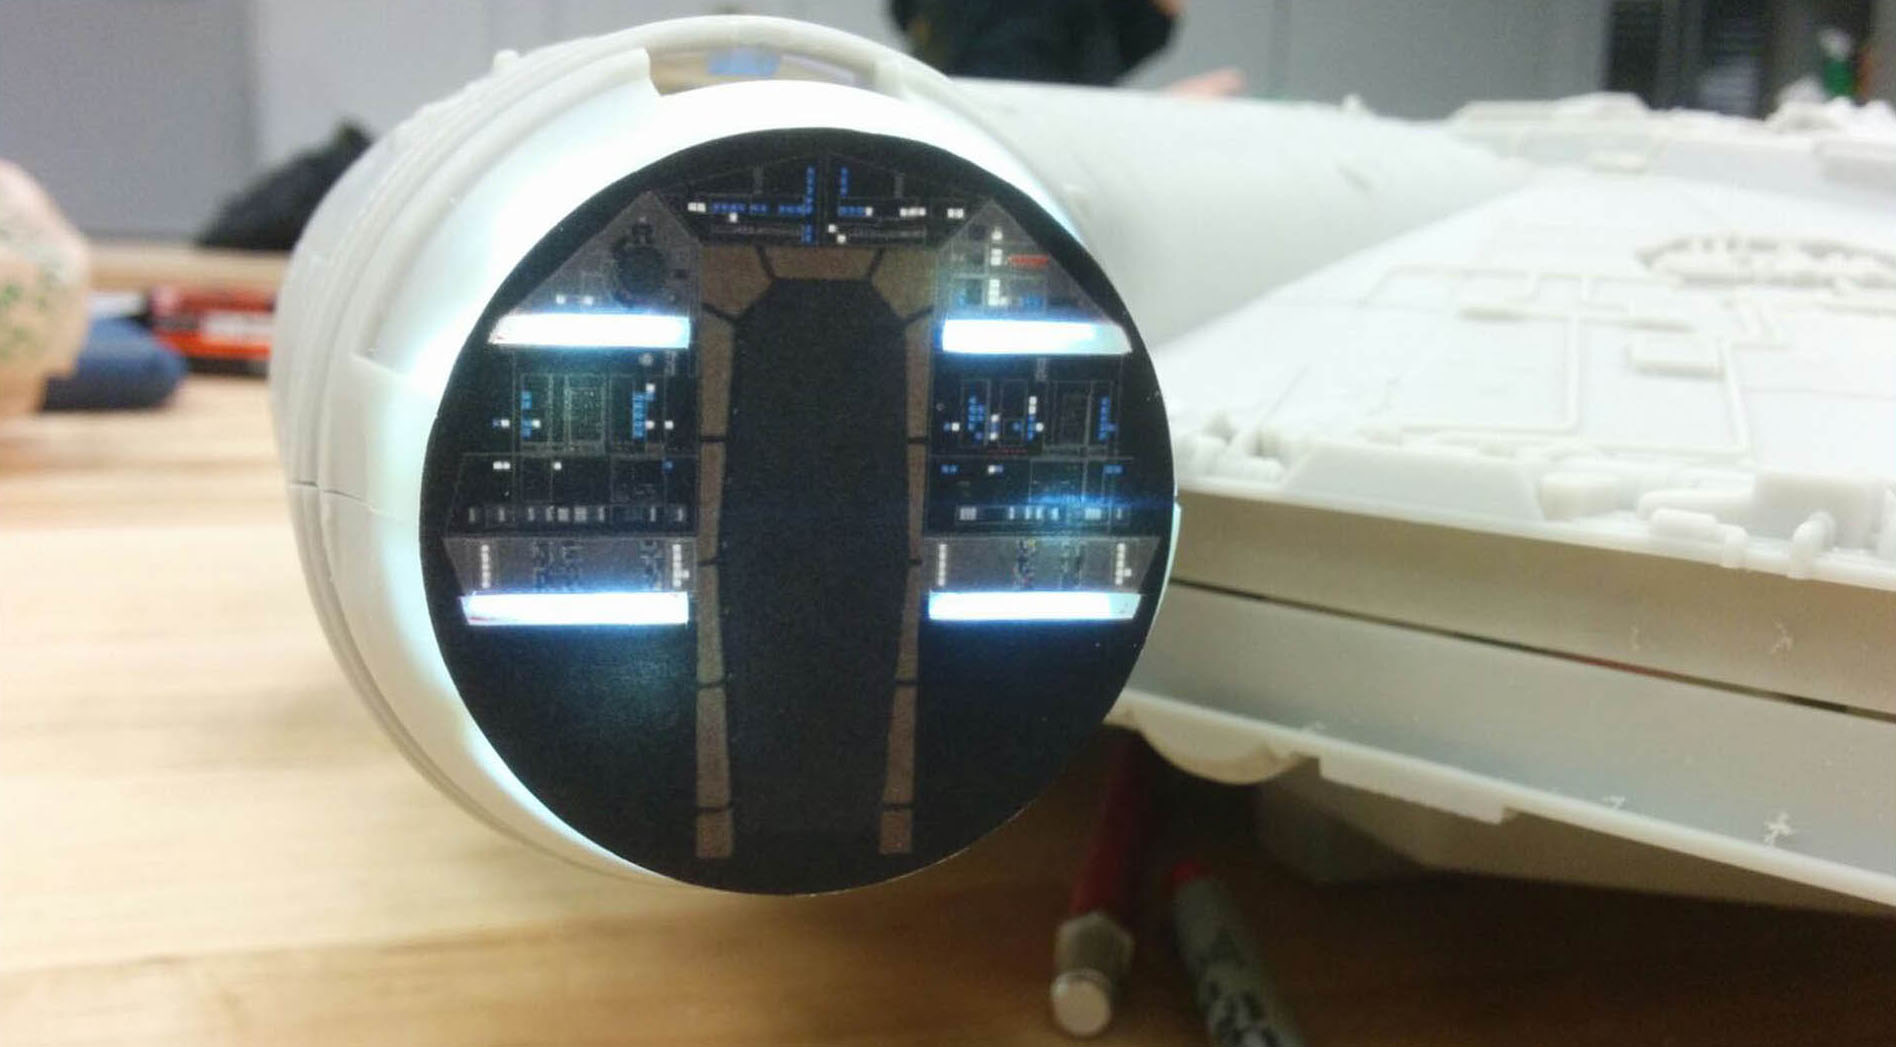 Practical lights added inside the cockpit with an image printout.